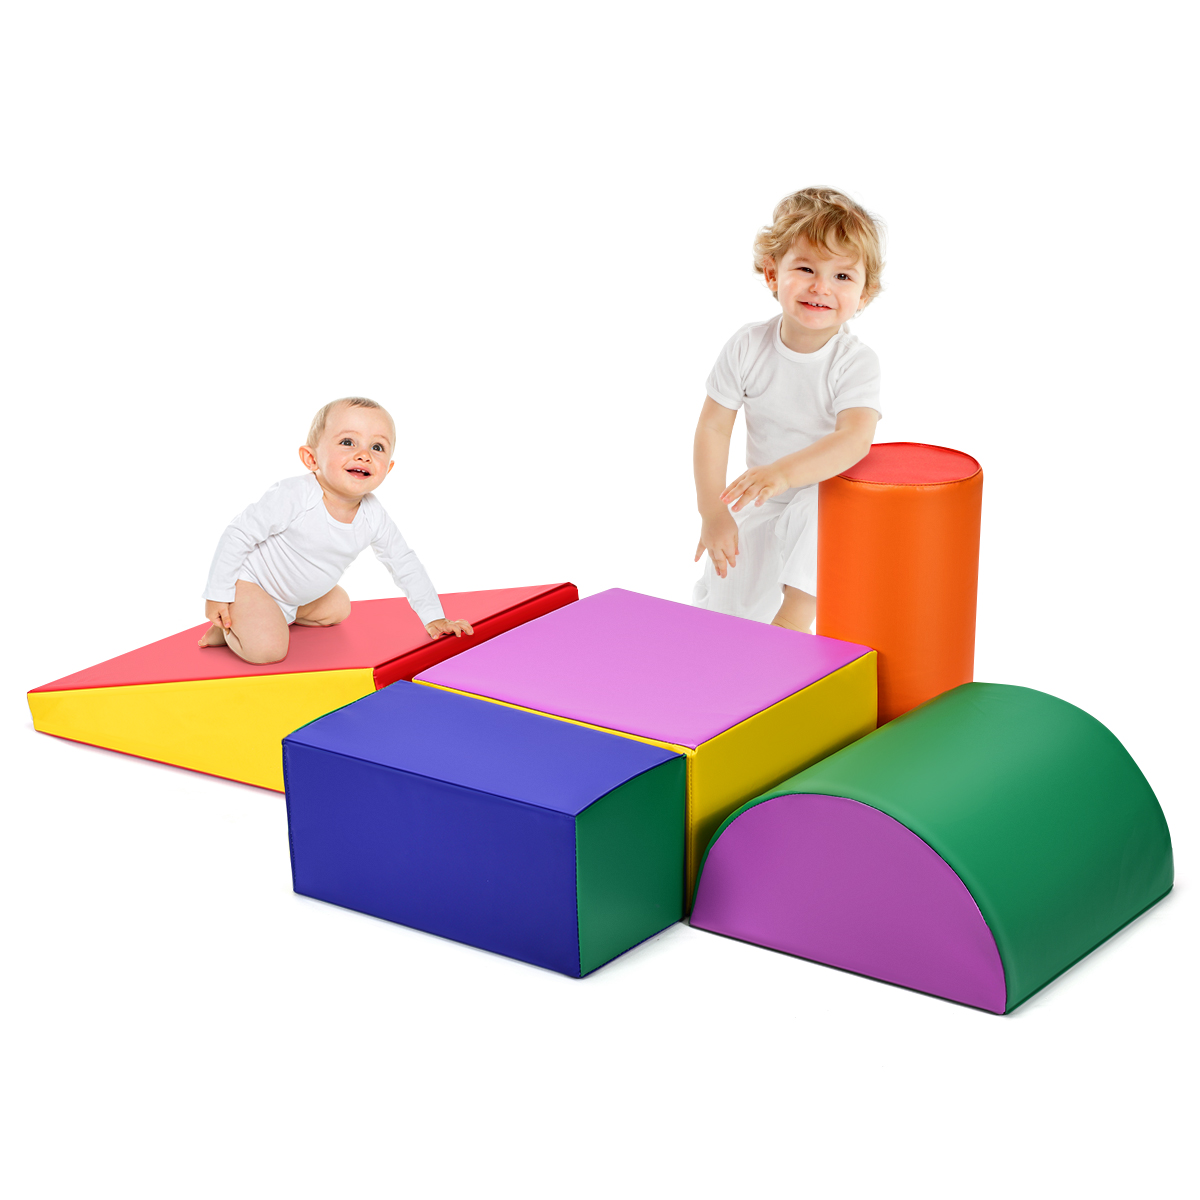 Kids Play Foam Set Toddlers Crawl Foam Shapes Set Climb Slide Safe Active Play